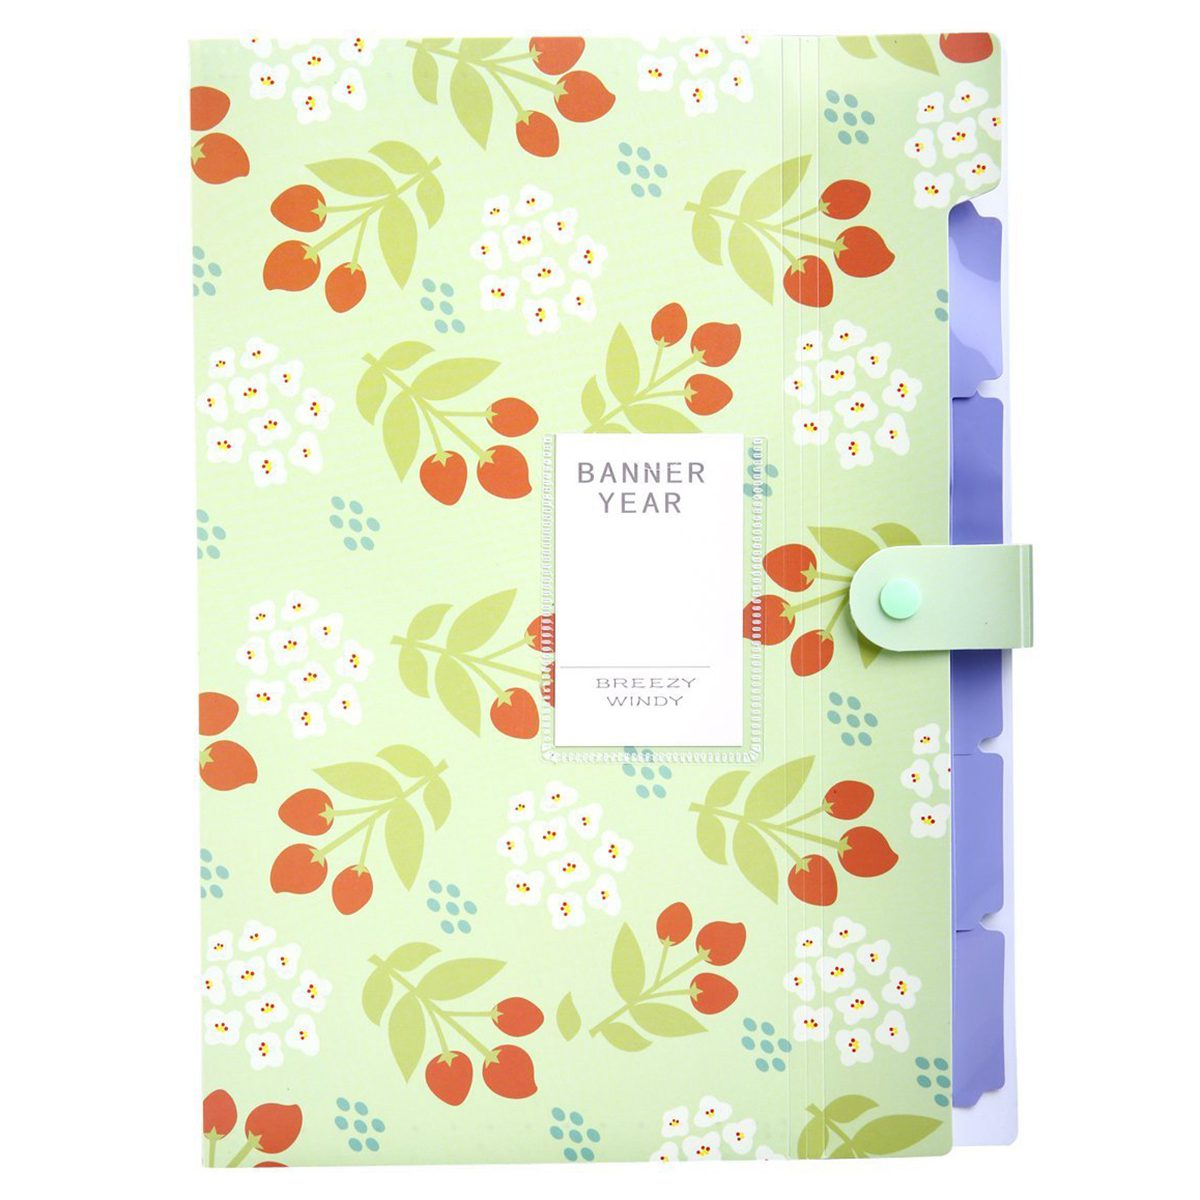 Skydue Floral Printed Accordion Document File Folder Expanding Letter Organizer (Green) skydue floral printed accordion document file folder expanding letter organizer blue